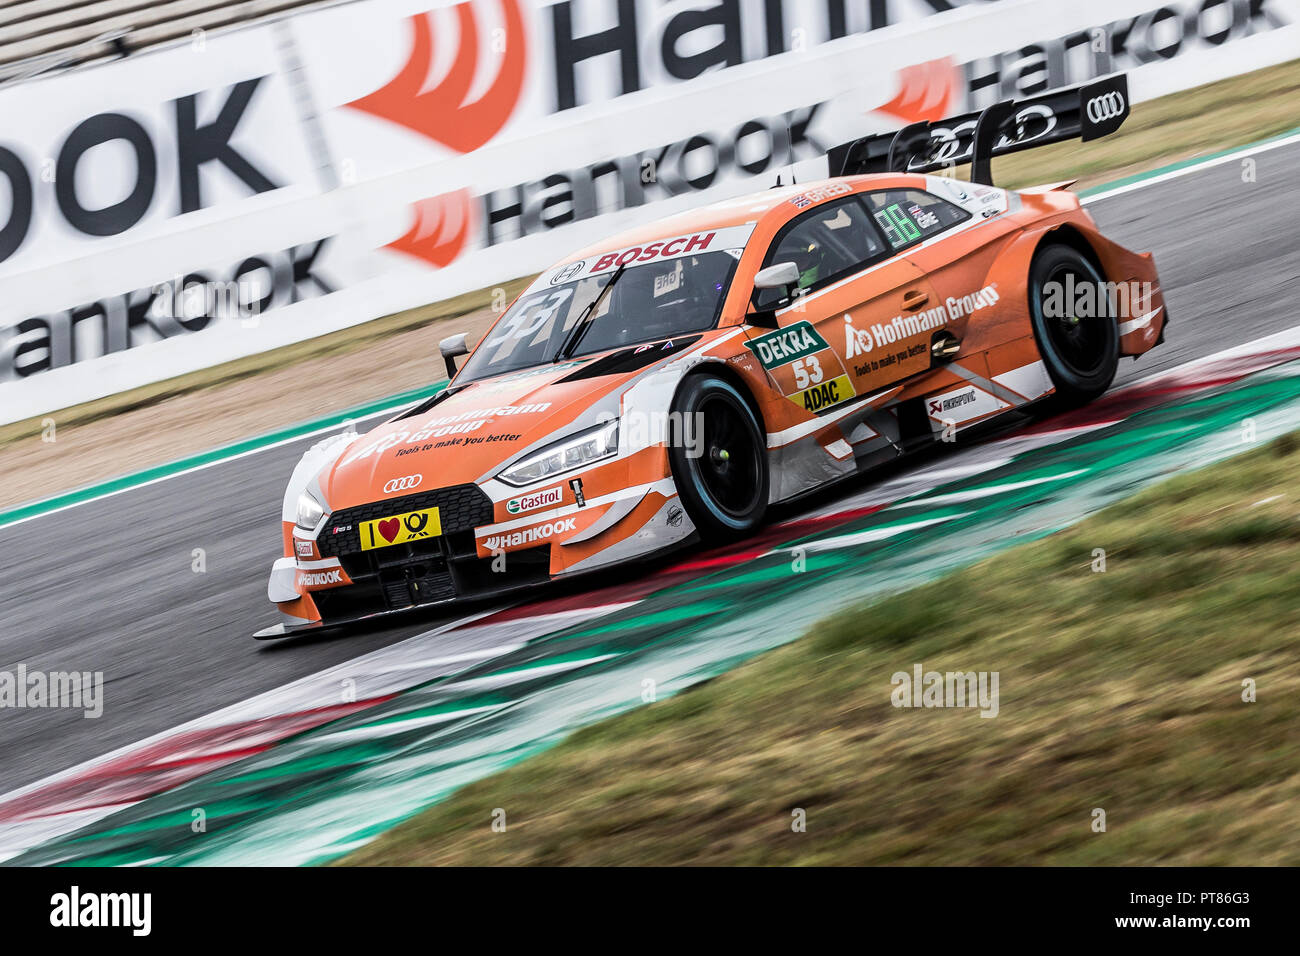 Misano Adriatico, Italy - August 25, 2018: A Hoffmann Group Audi RS 5 DTM of Audi Sport Team ...